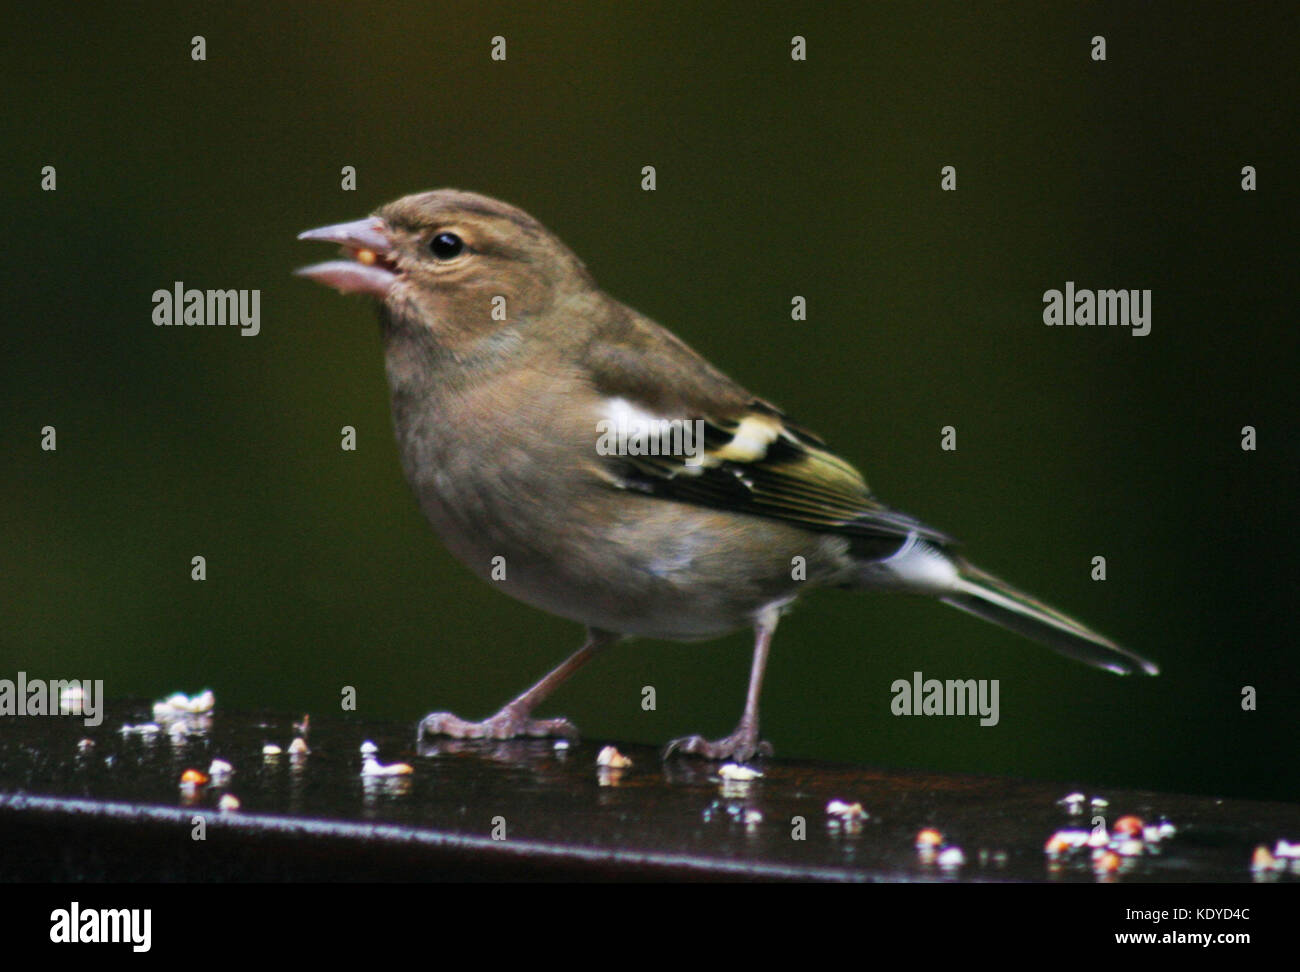 Chaffinch Feeding - Stock Image